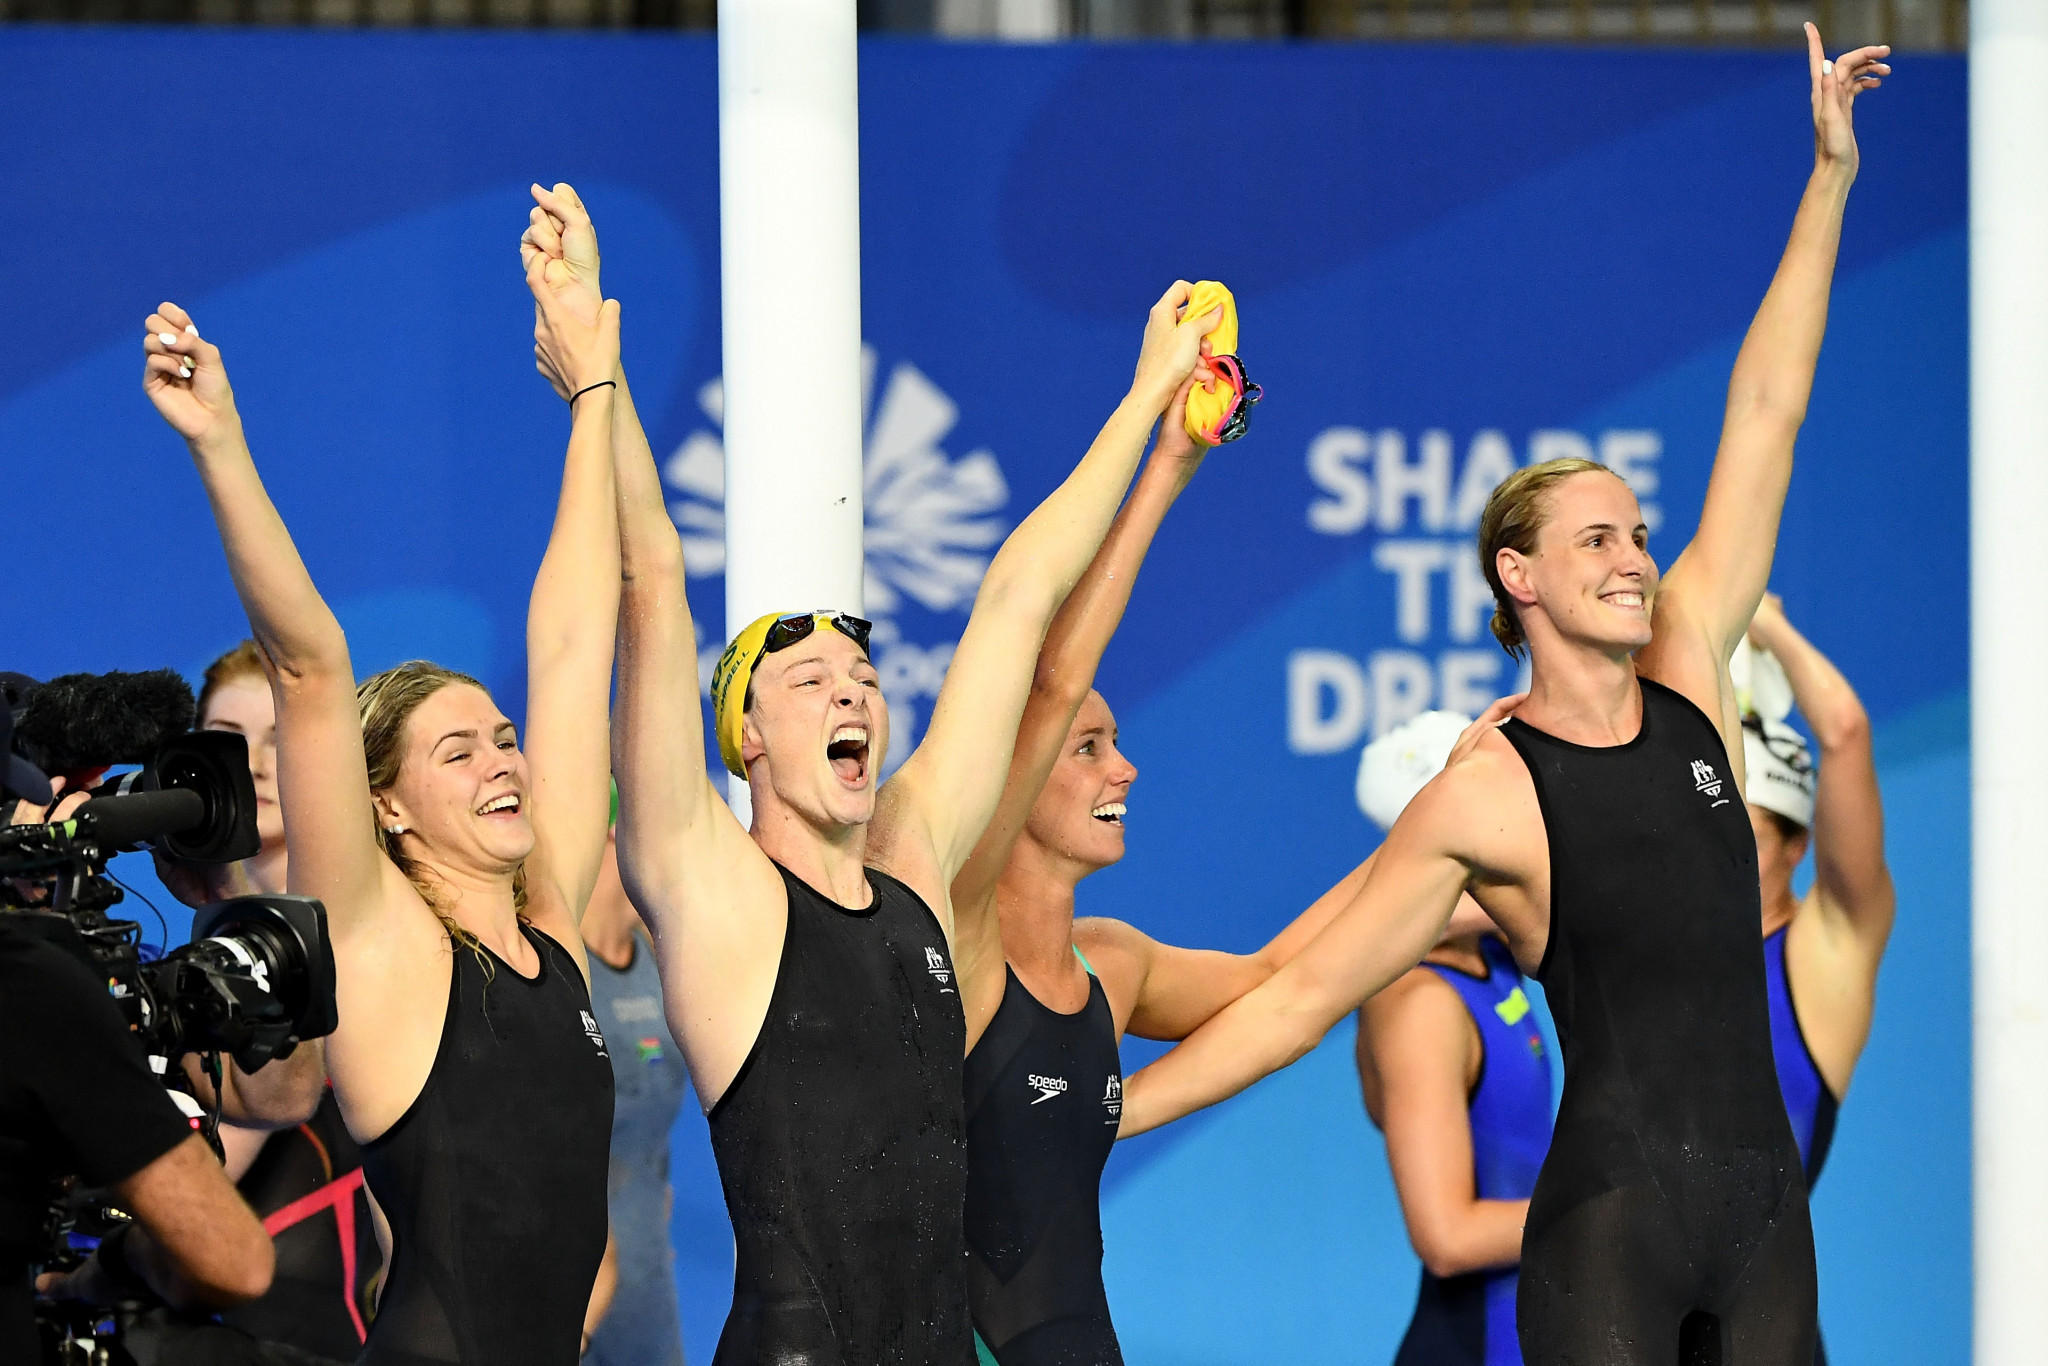 Australia produced a blistering performance to win the women's 4x100m freestyle title ©Getty Images